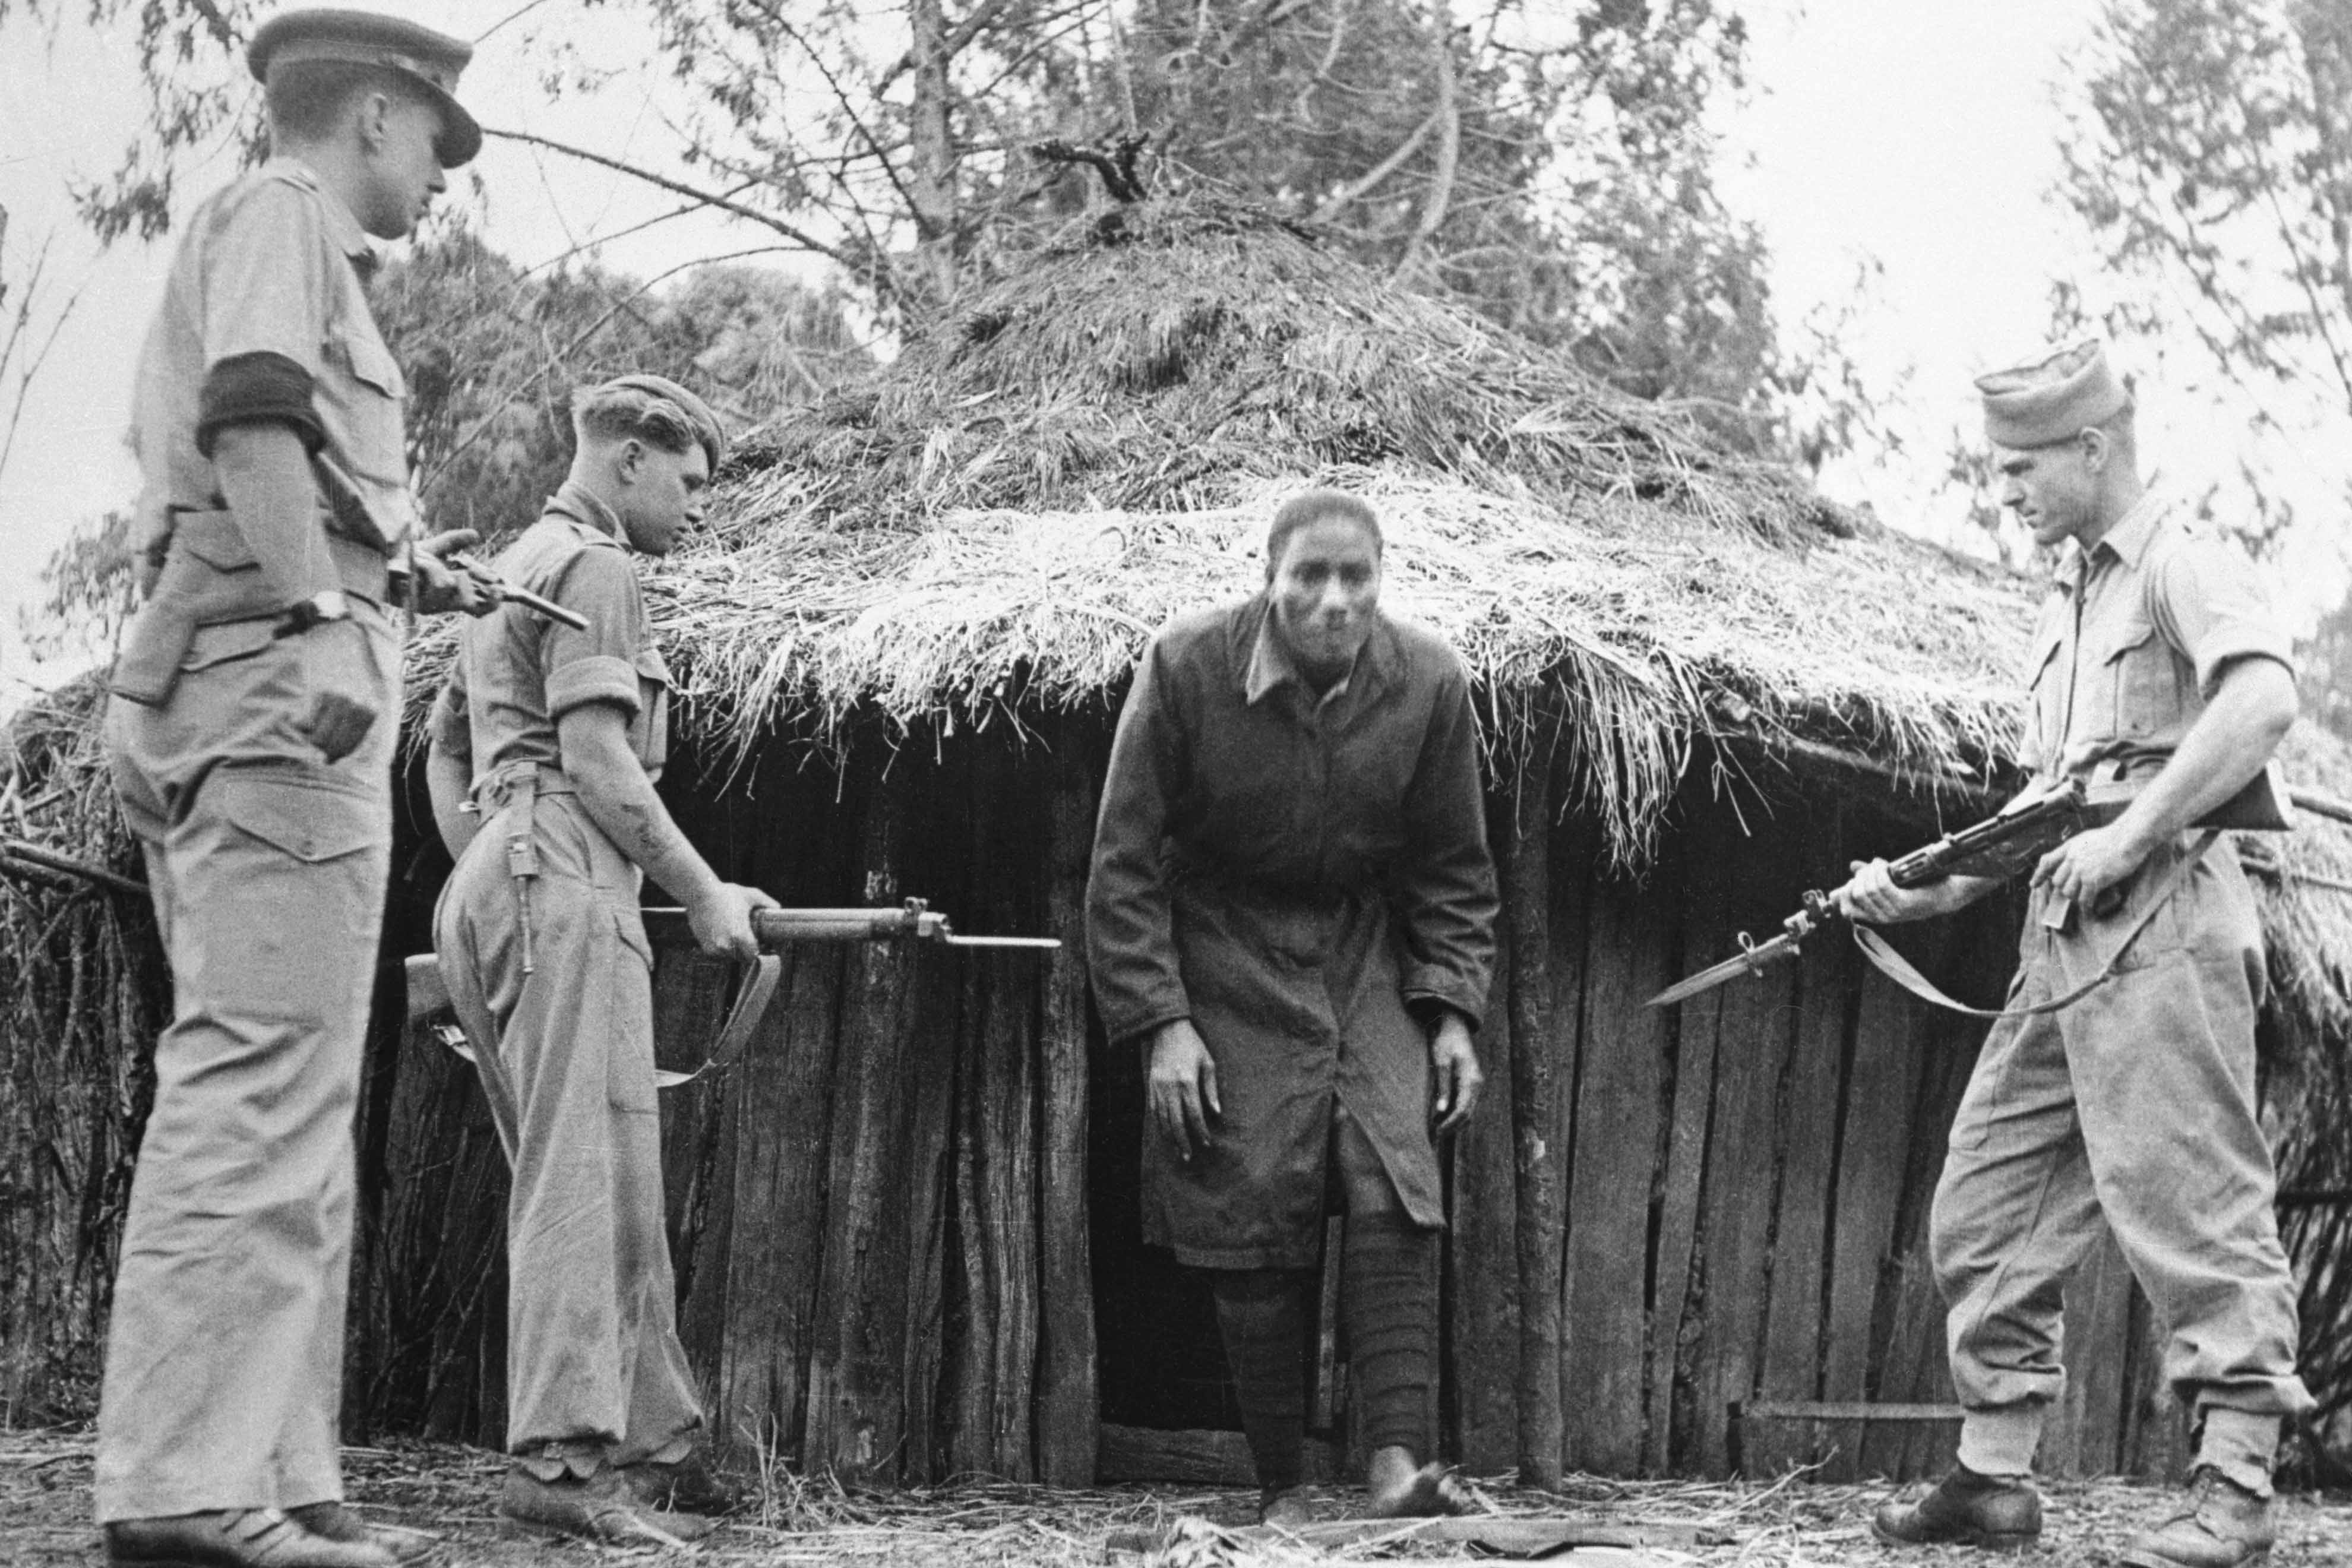 Undated: Members of the Lancashire Fusiliers apprehending a man suspected of being a 'Mau Mau' freedom fighter in Kenya during colonial times.